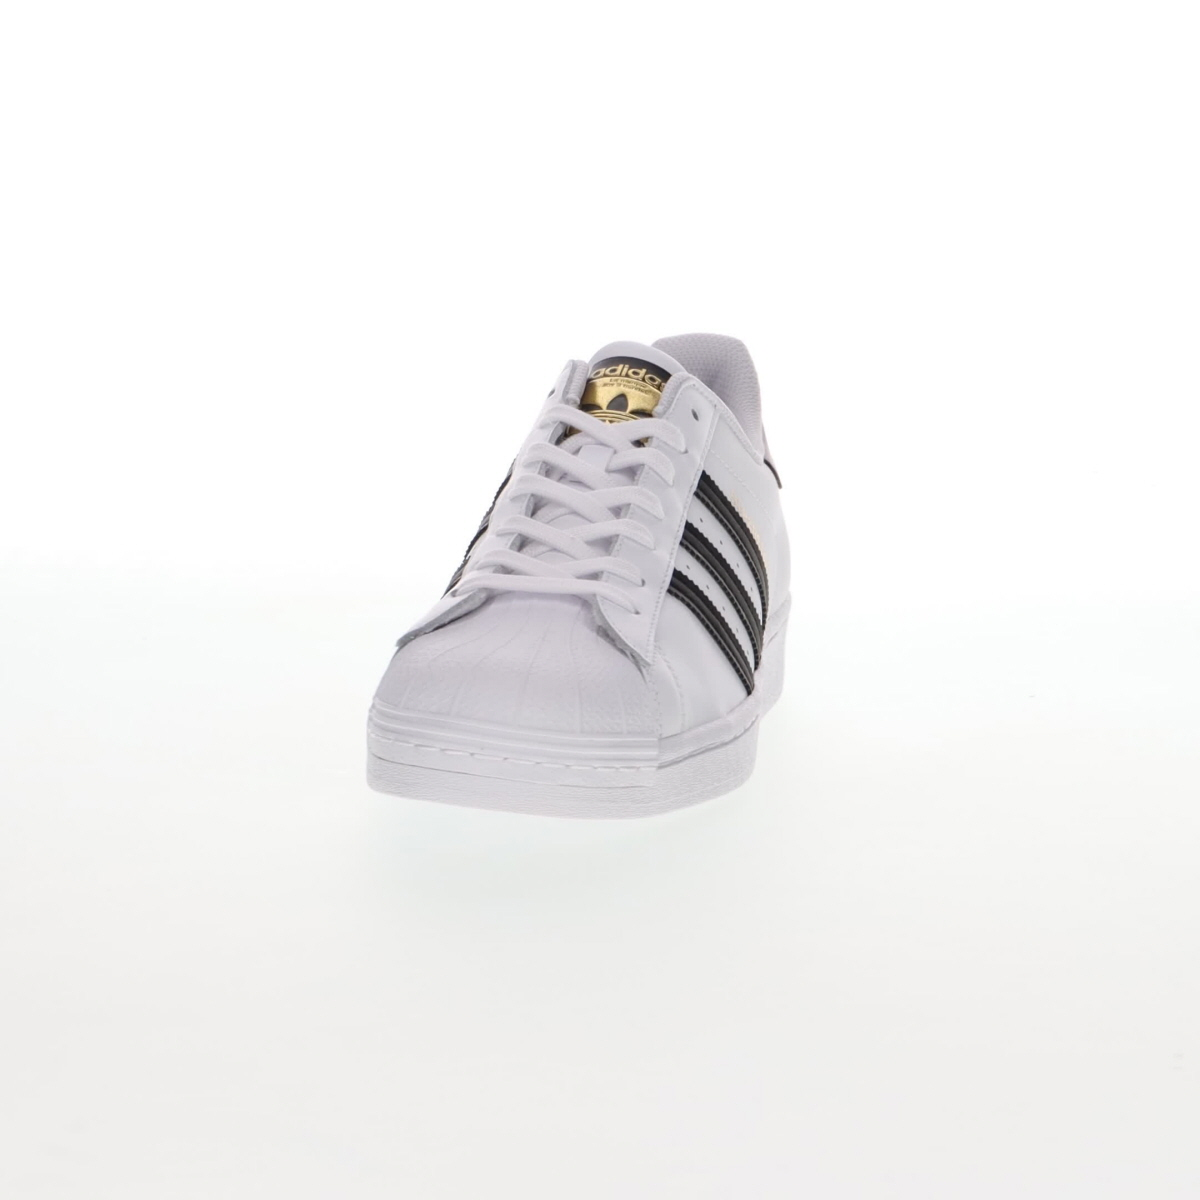 yeezy release philippines shoes for women youtube